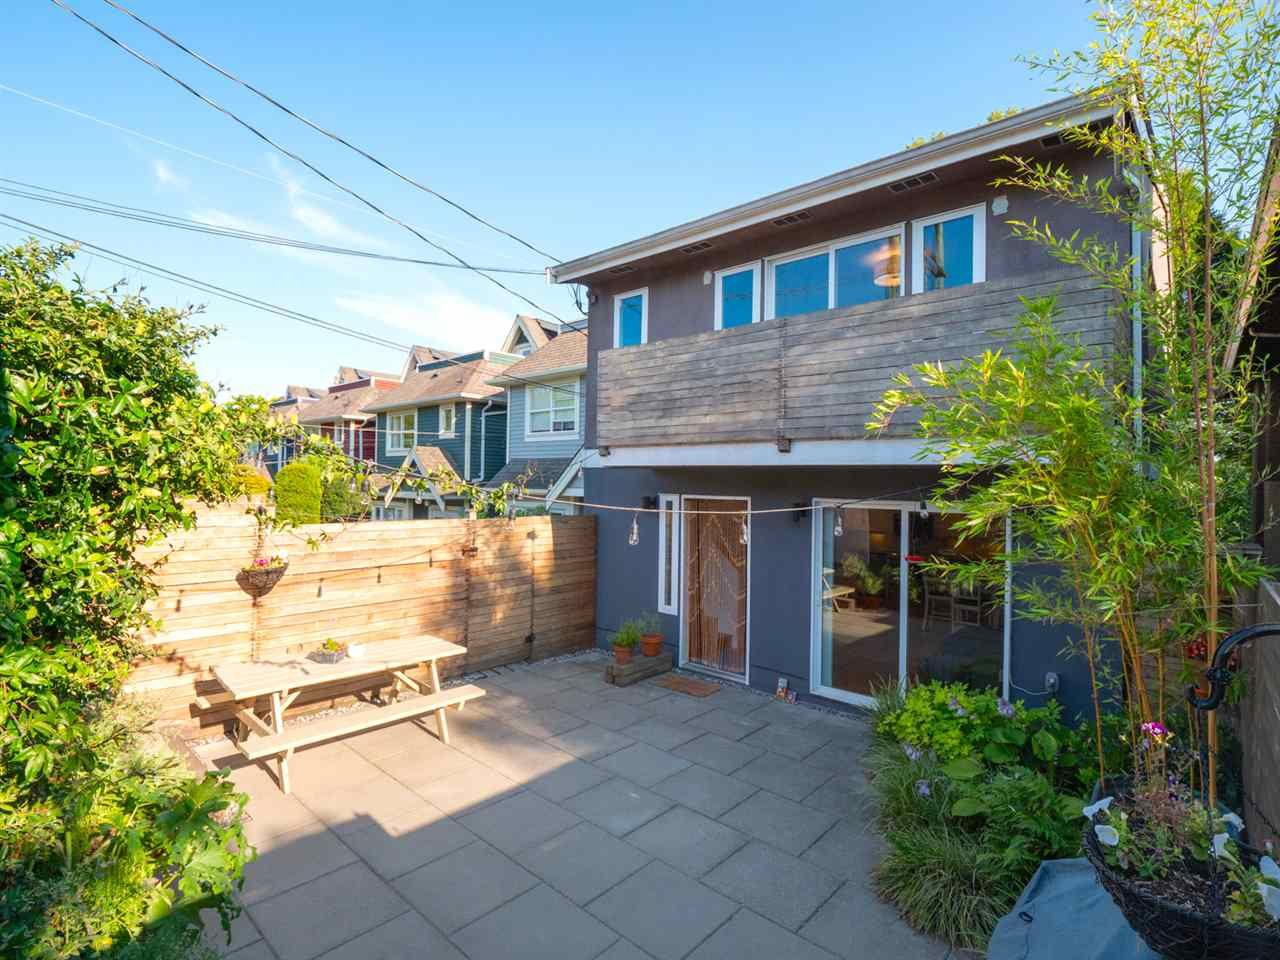 Main Photo: 873 PRIOR STREET in Vancouver: Strathcona 1/2 Duplex for sale (Vancouver East)  : MLS®# R2413297